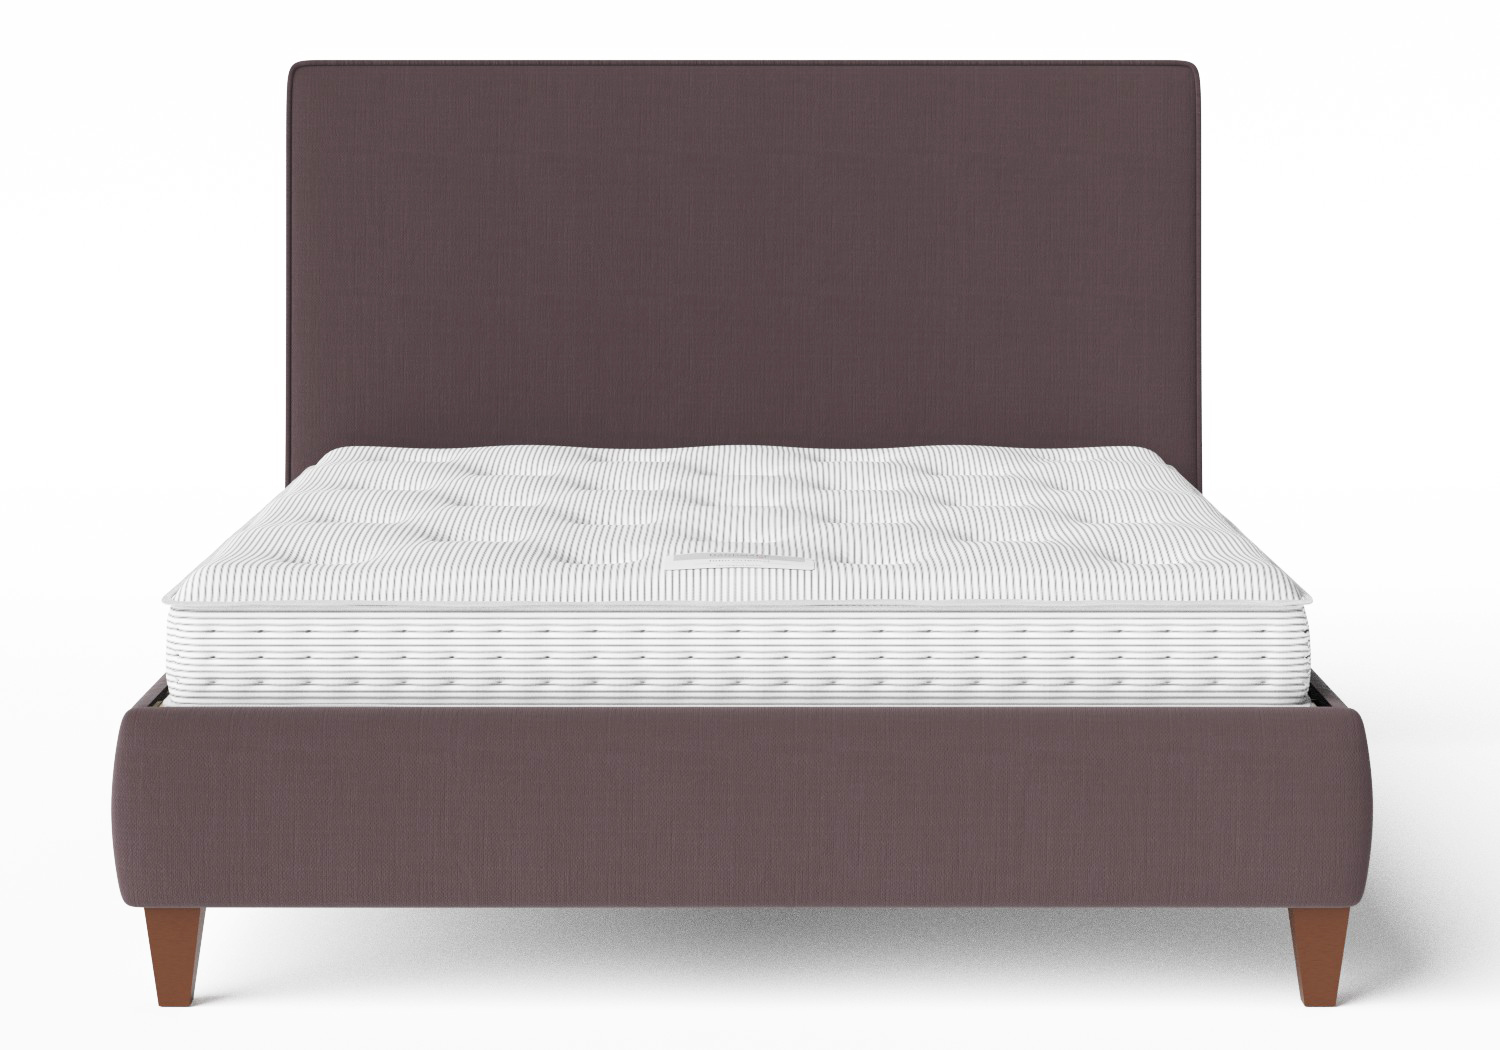 Yushan Upholstered Bed in Aubergine fabric with piping shown with Juno 1 mattress